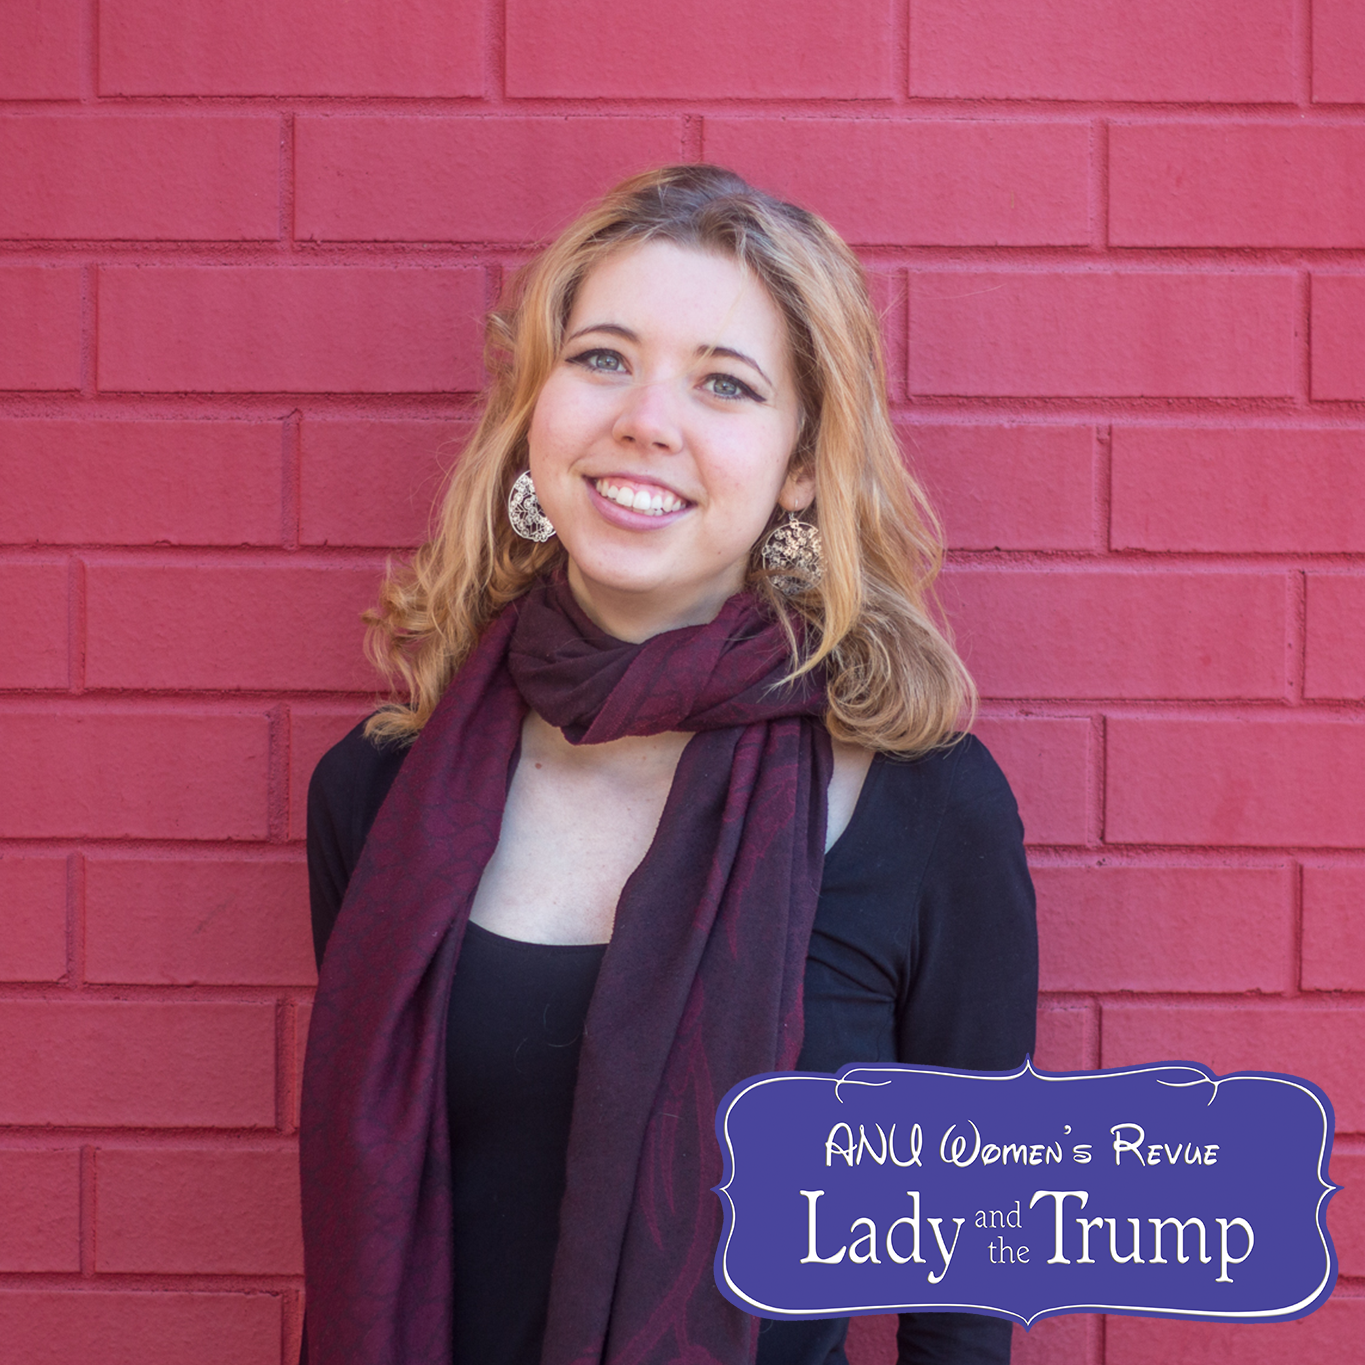 Lady and the Trump - Headshots for ANU Women's Revue